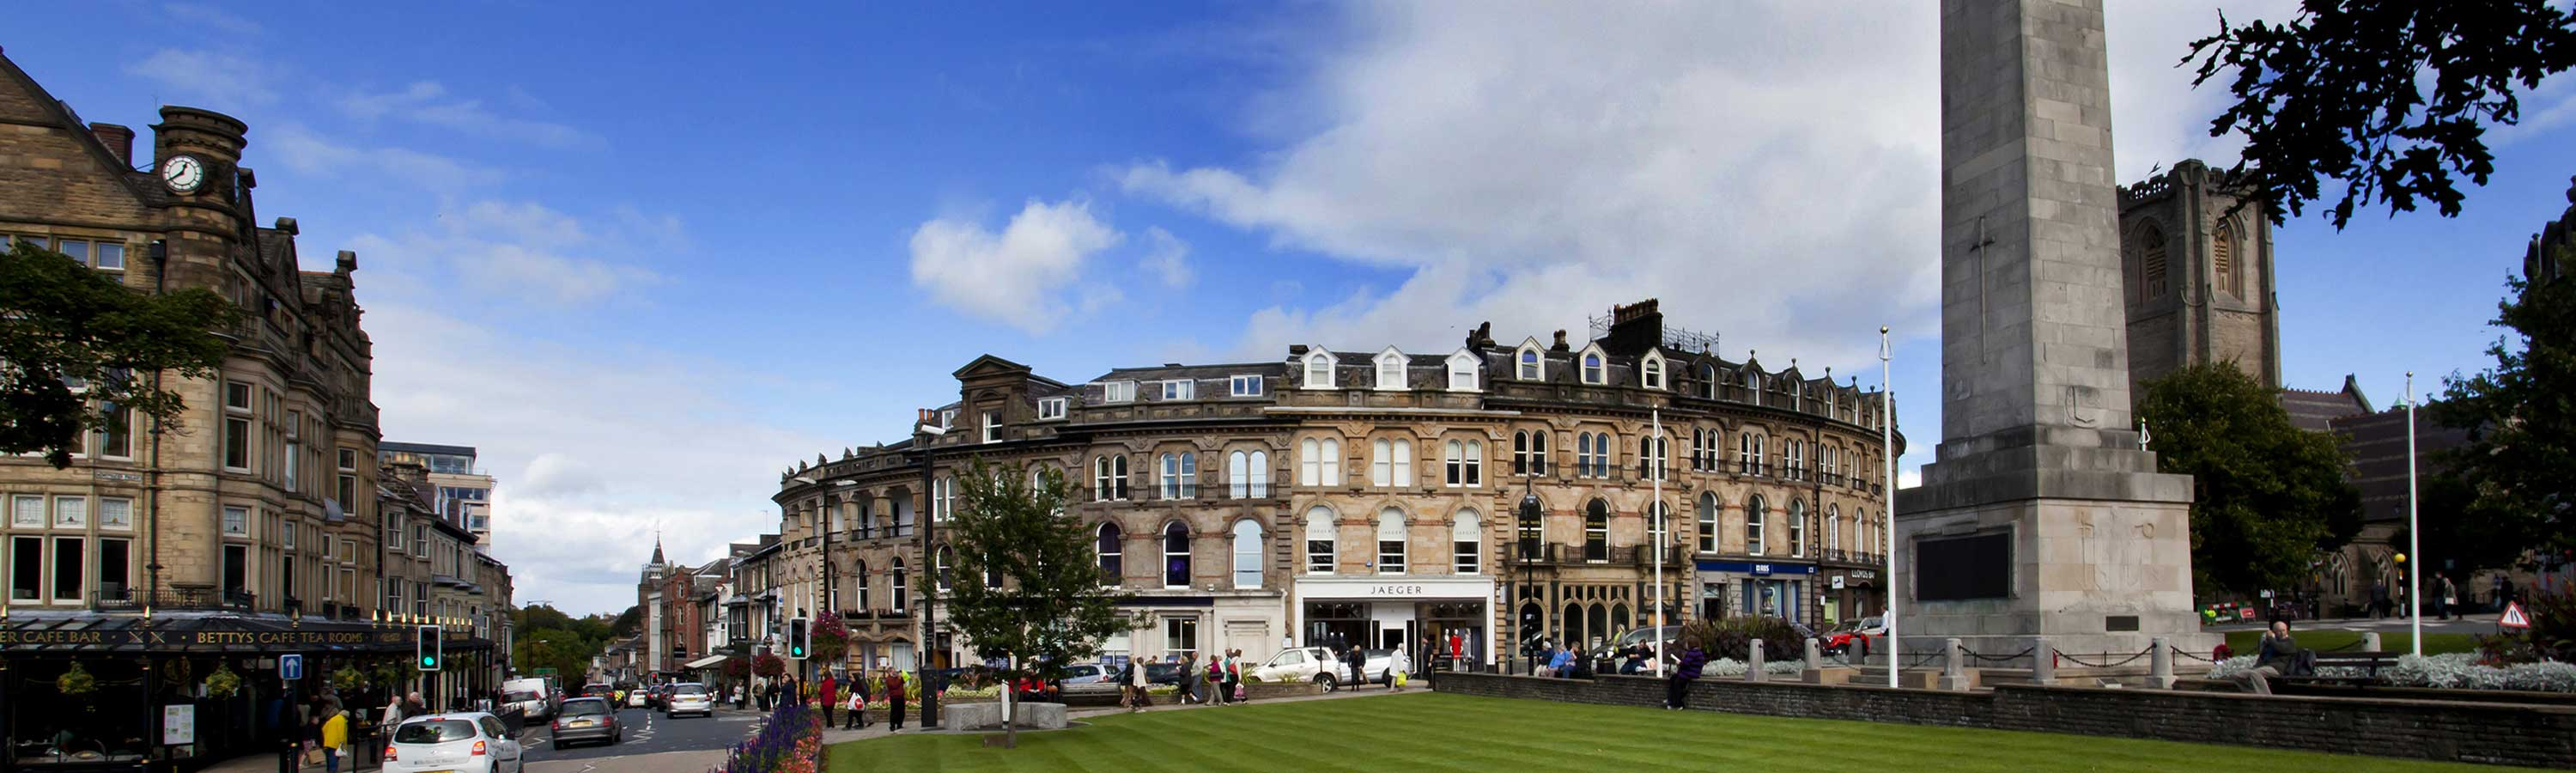 Harrogate Centre Photo